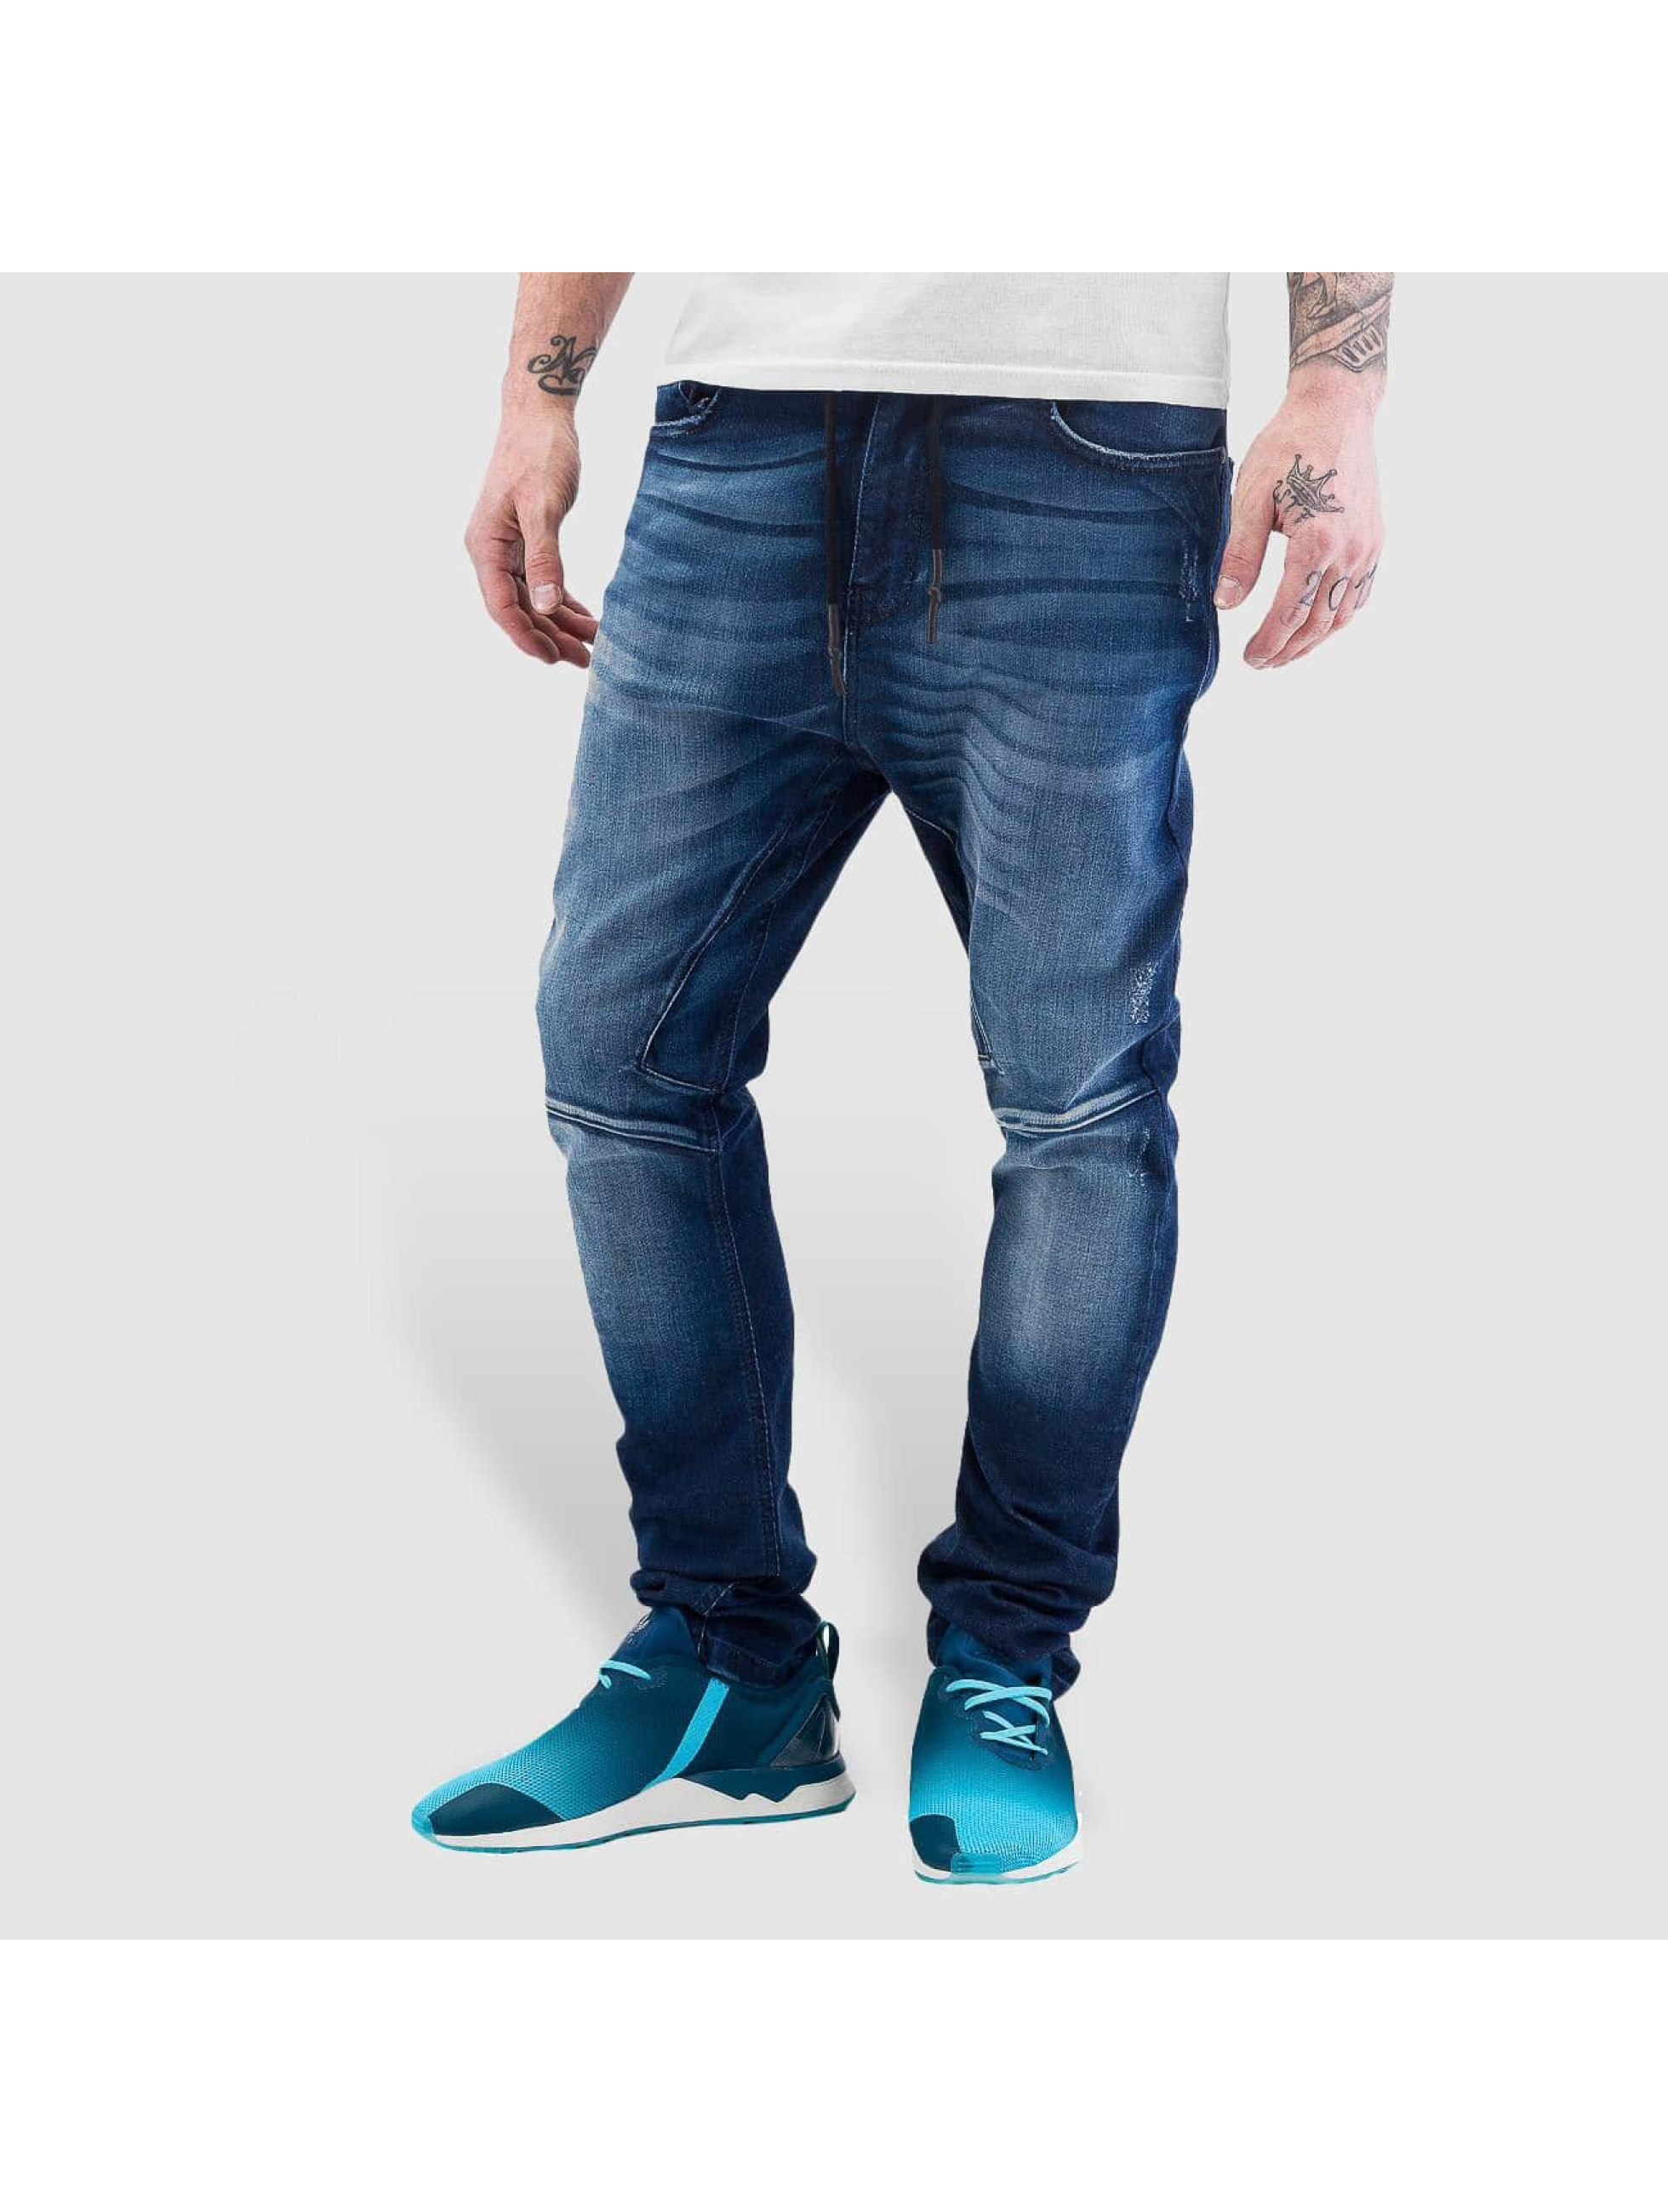 Just Rhyse Jean carotte antifit Bolle bleu